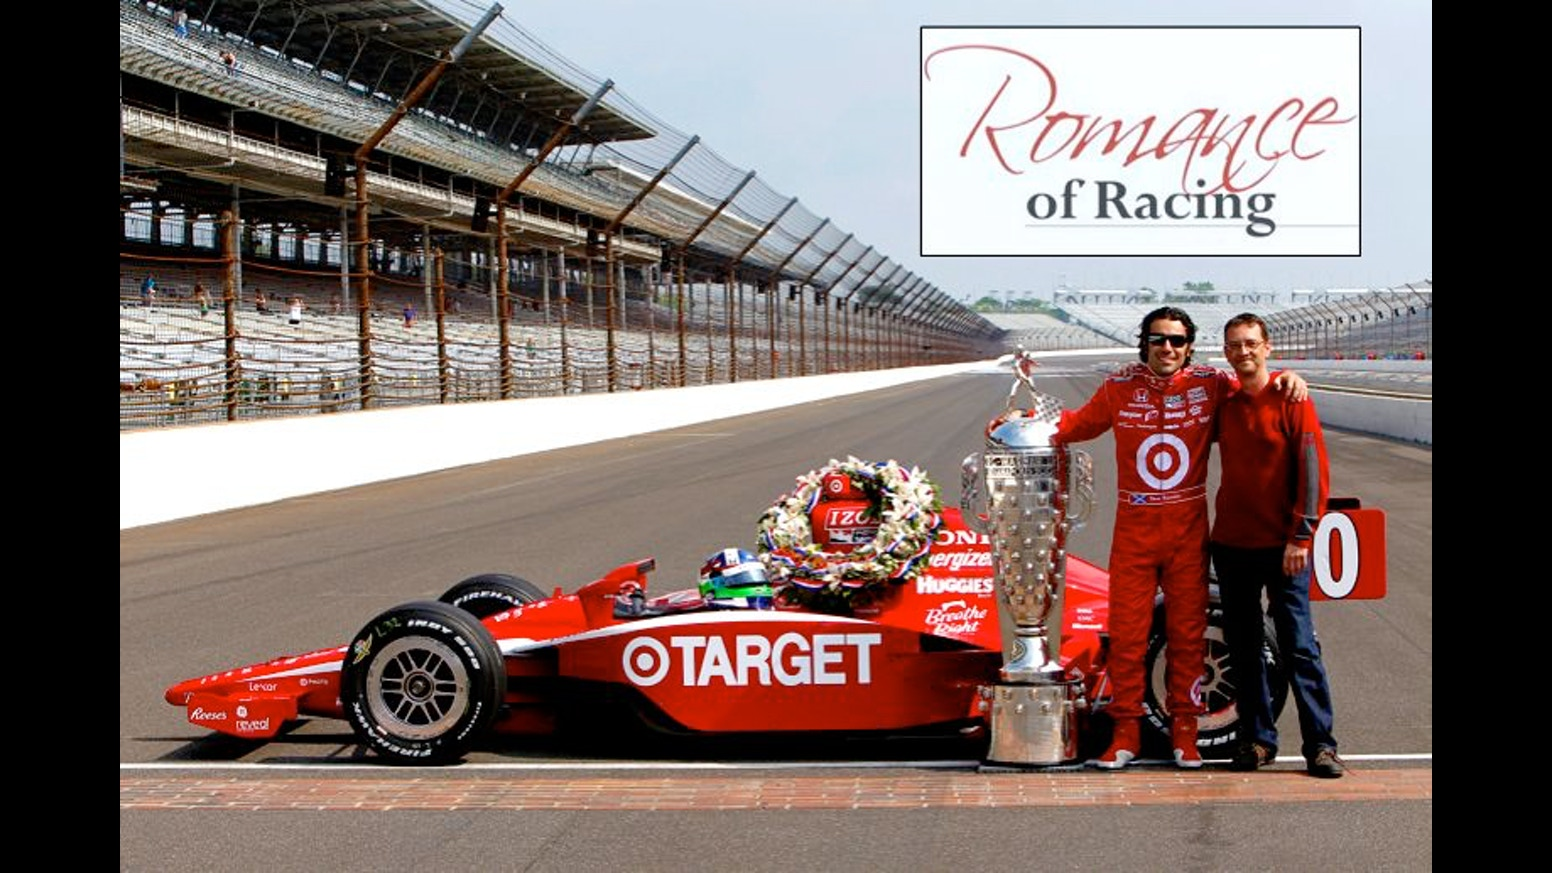 embrace r ce of racing the book personally why by r ce of racing a quality 136pp book of essays by triple indy 500 winner dario franchitti allied to brilliant motorsport images